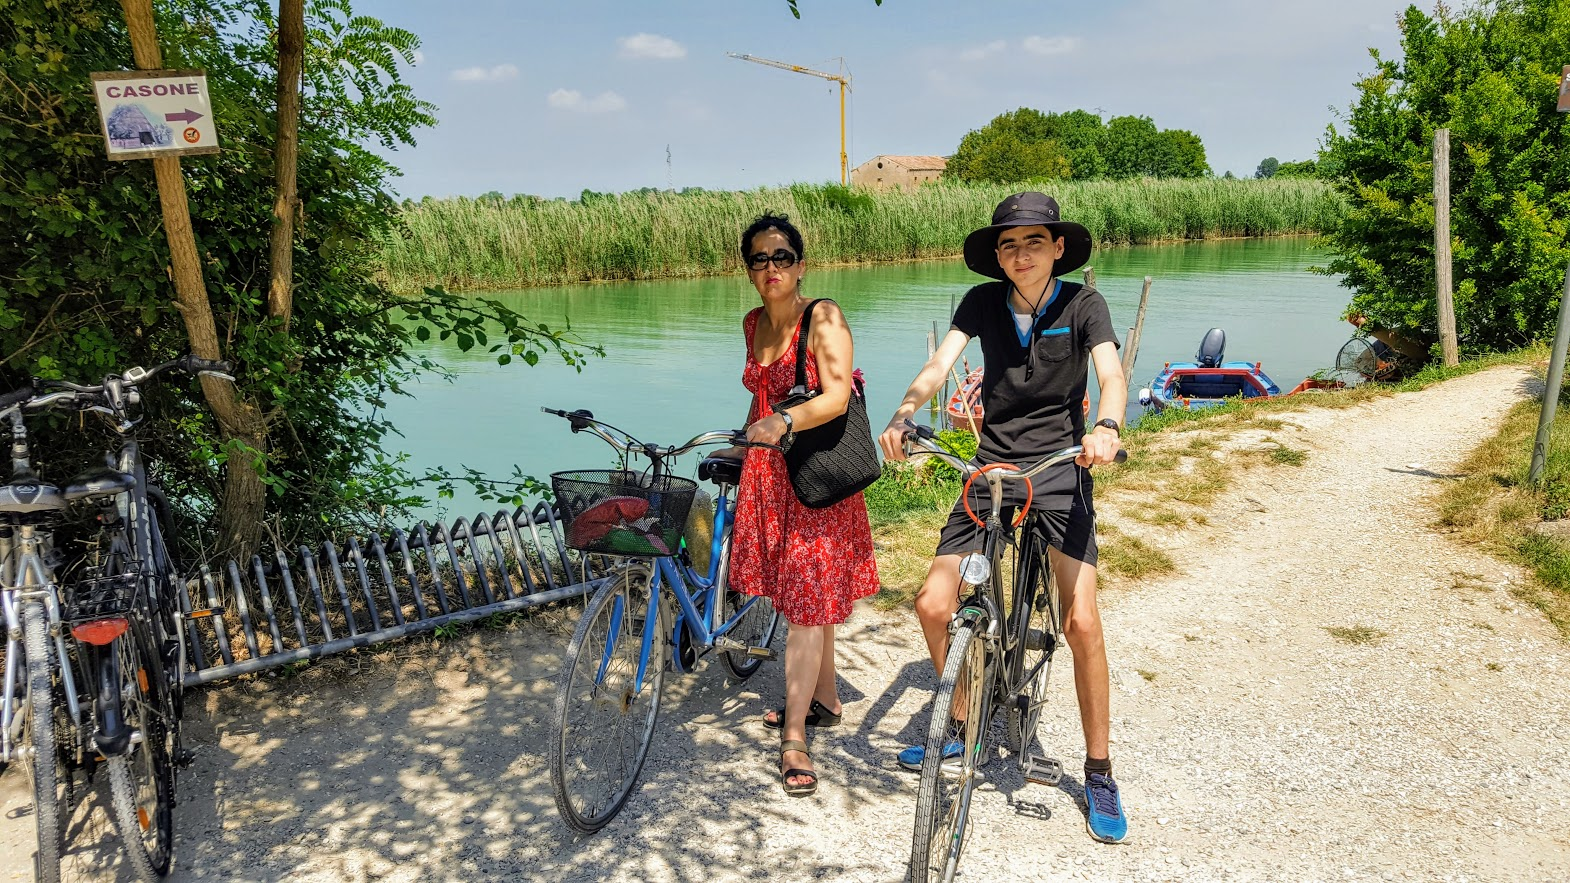 Cycling in Caorle